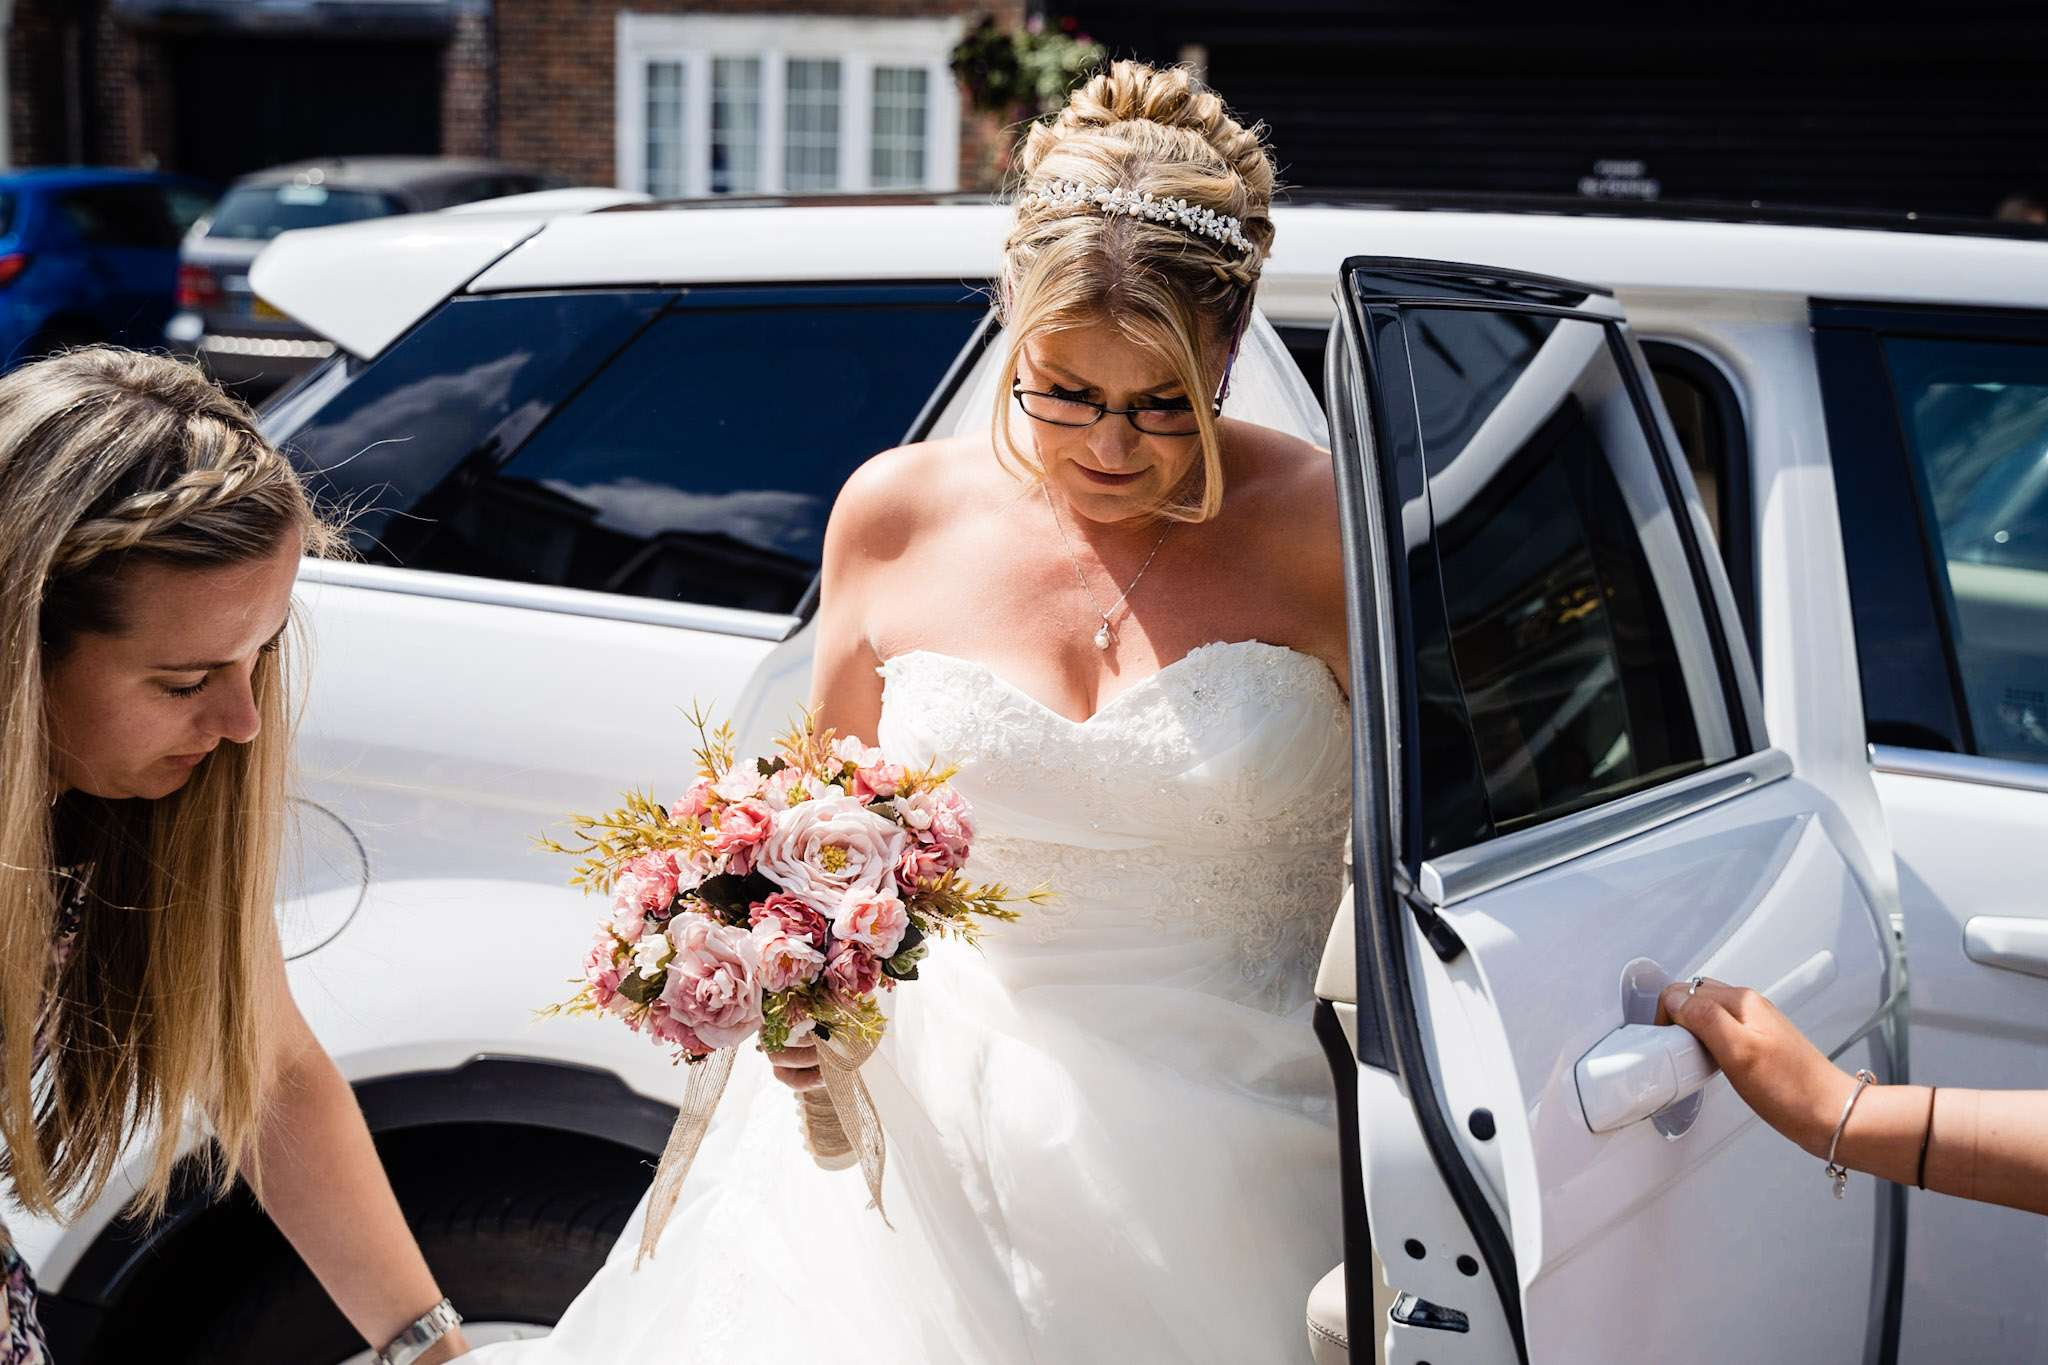 A bride arriving at Poole Guildhall as she is about to get married